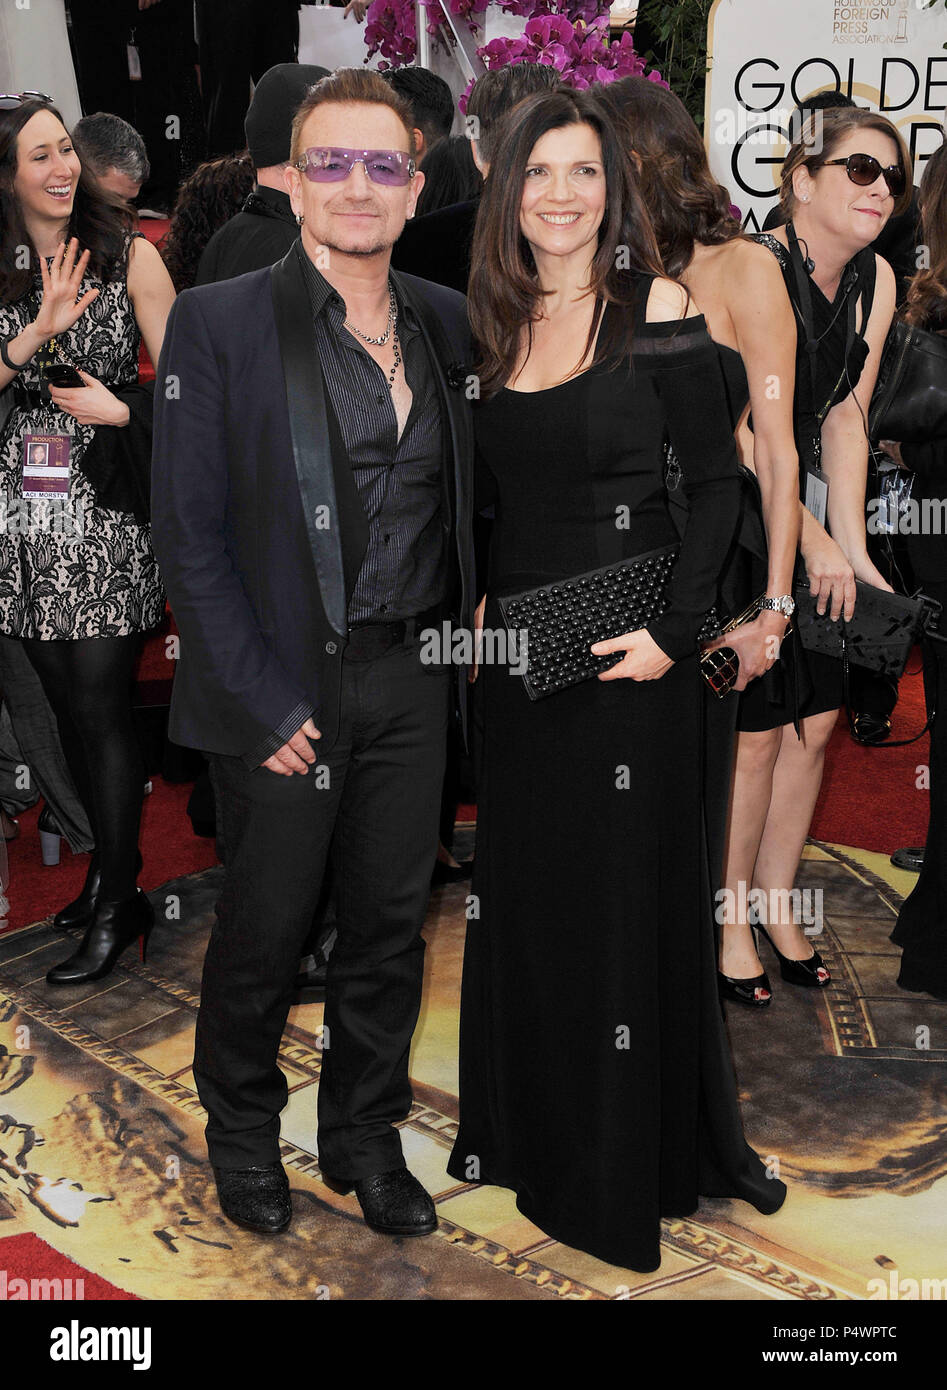 Carpet U2 U2 Bono And Wife 192 At The 2014 Golden Globes Awards At The